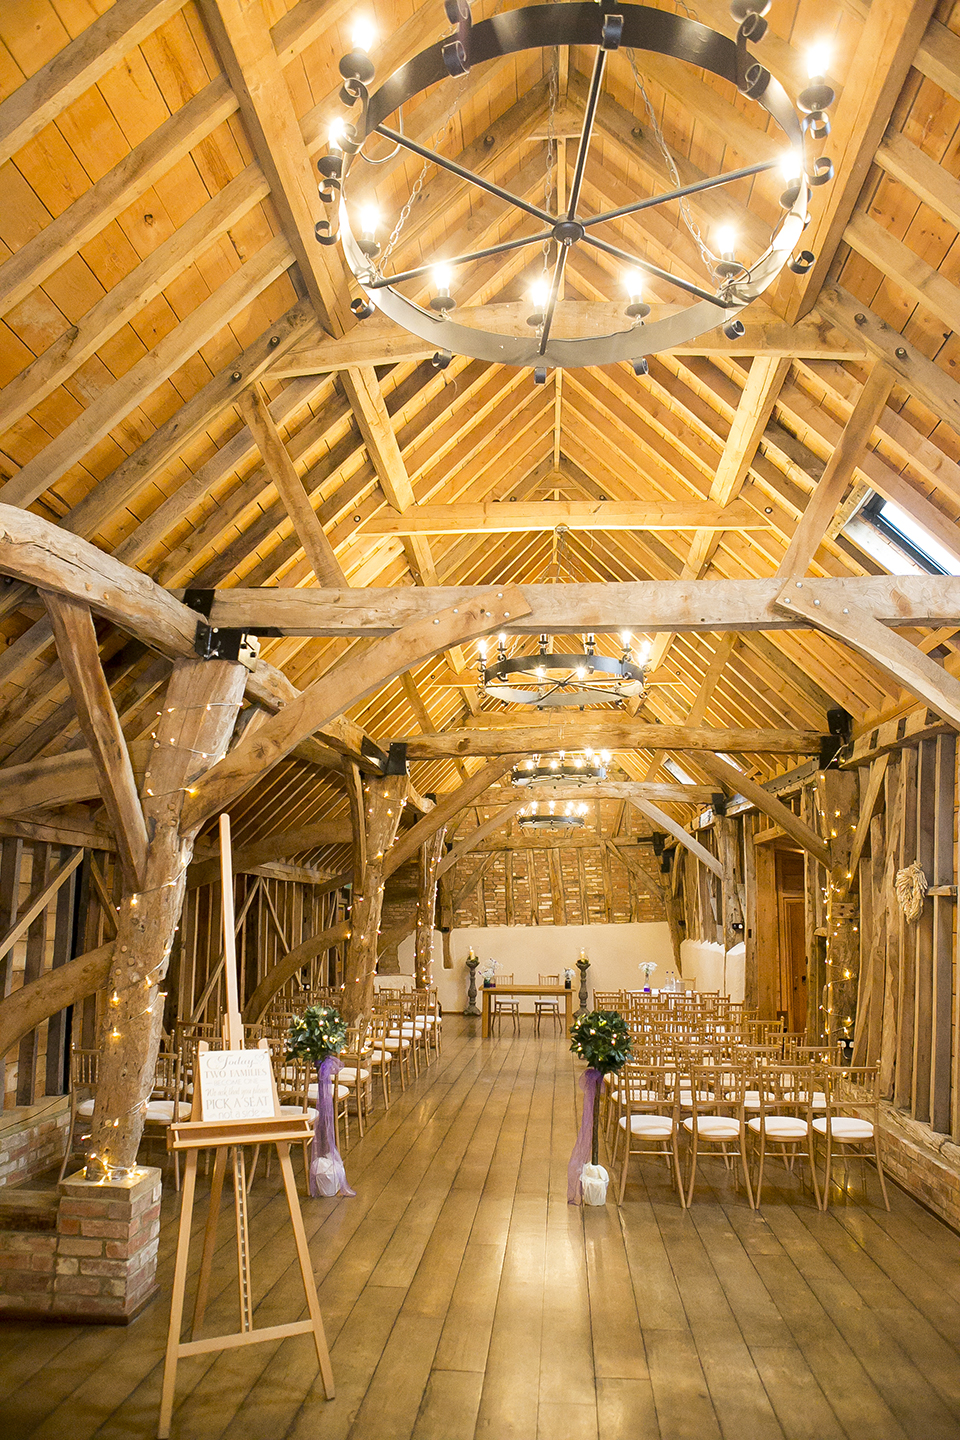 The Rickety Barn is set up for a rustic wedding ceremony